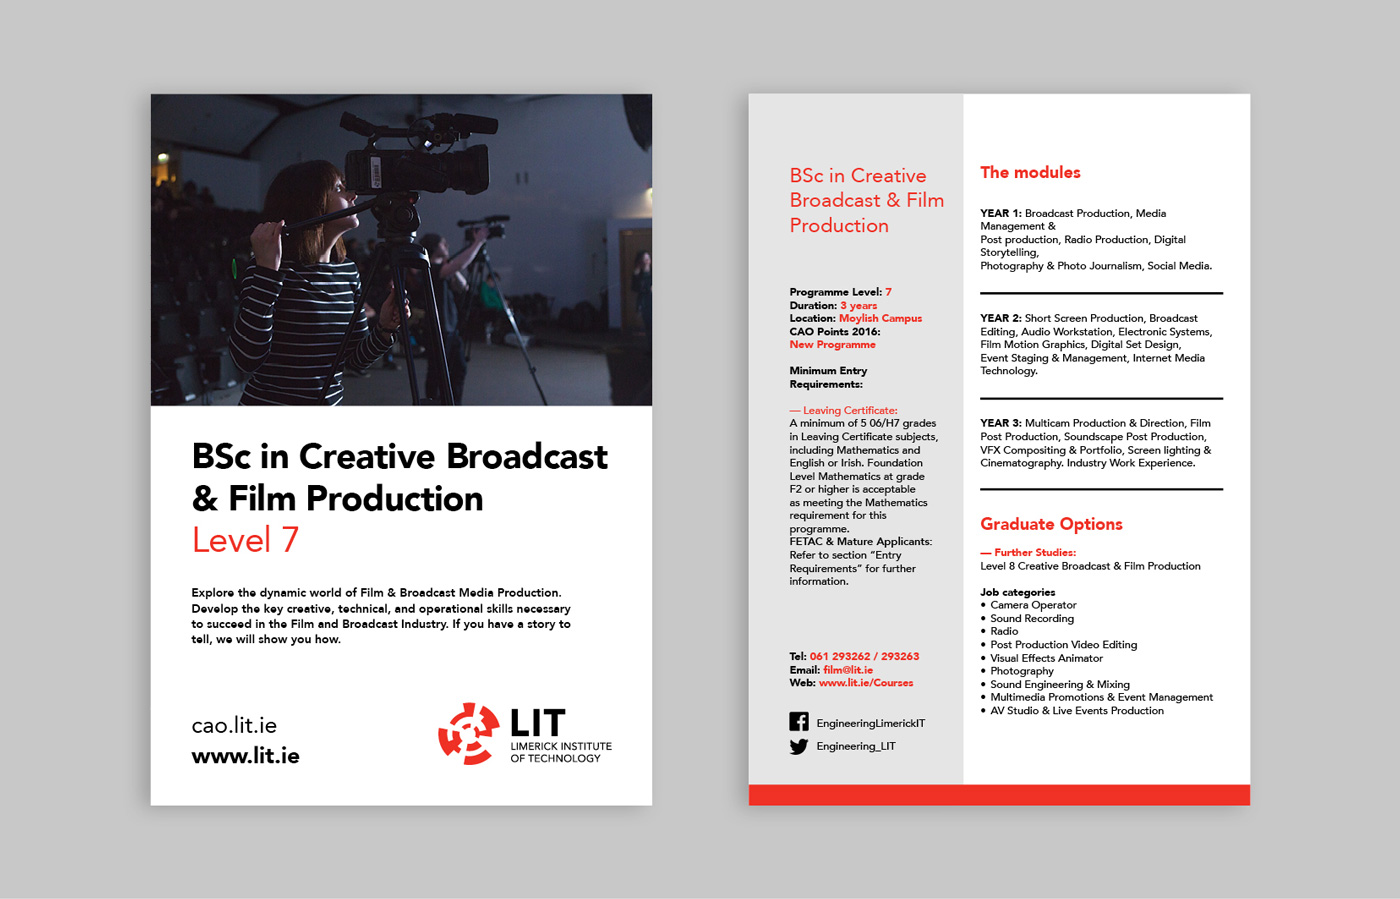 LIT Electrical and Electronic Engineering brochure design of course card for BSc in Creative Broadcast & Film Production.